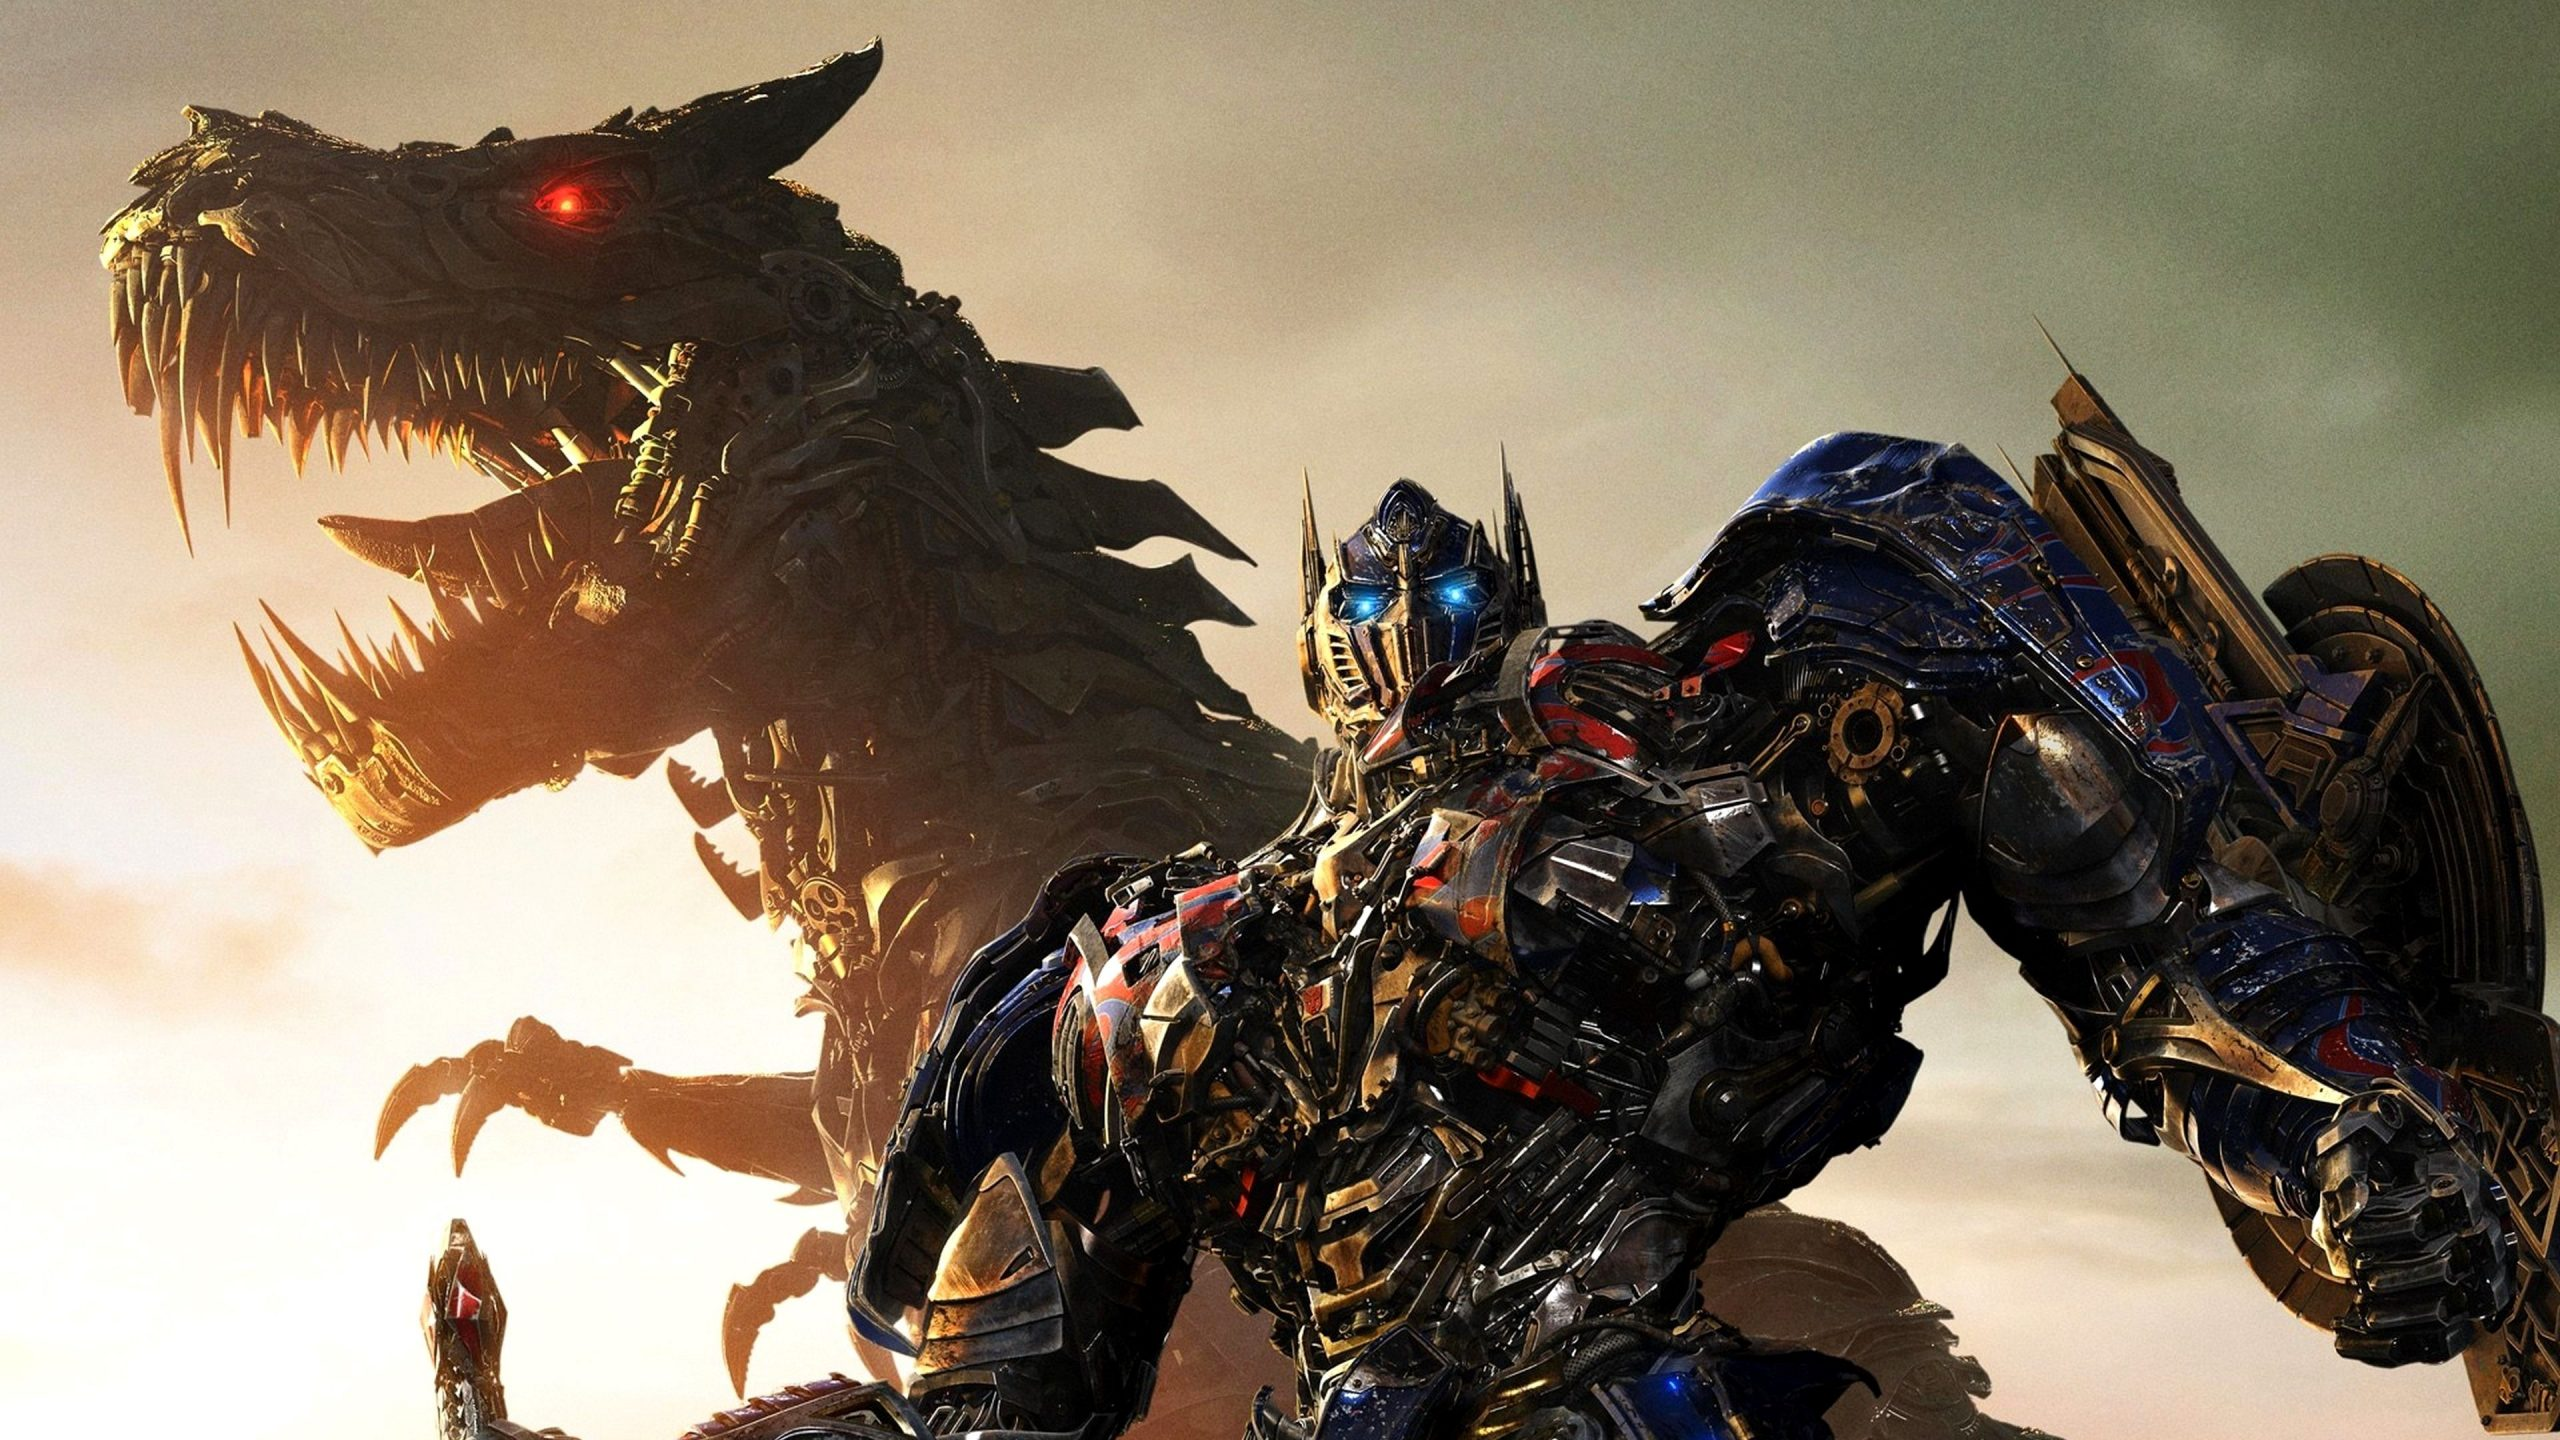 Transformers Wallpaper 4K For Pc Gallery